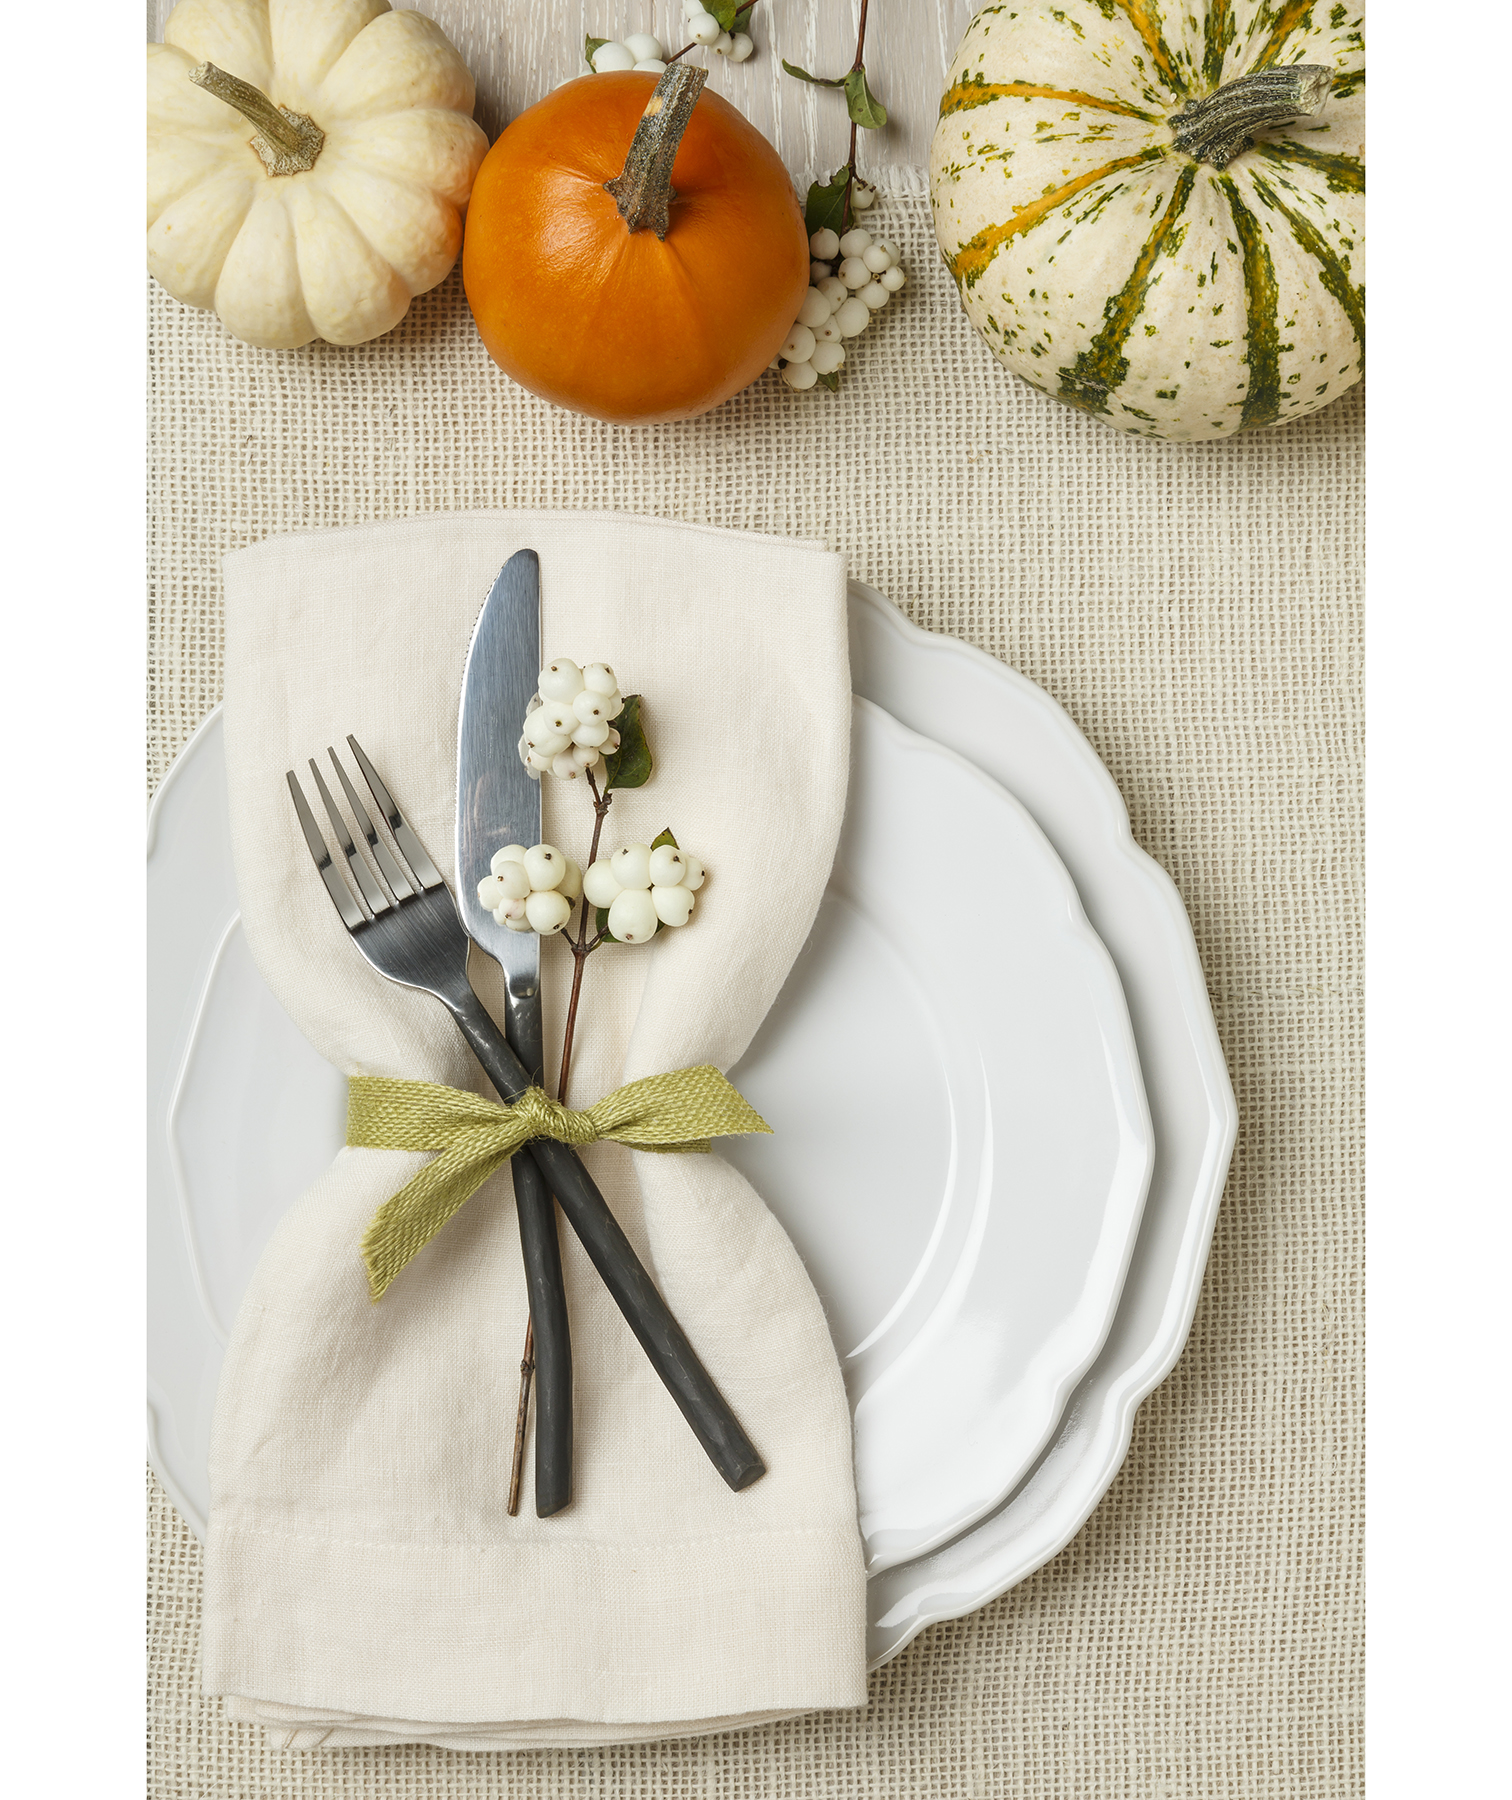 Thanksgiving place setting with mini pumpkins